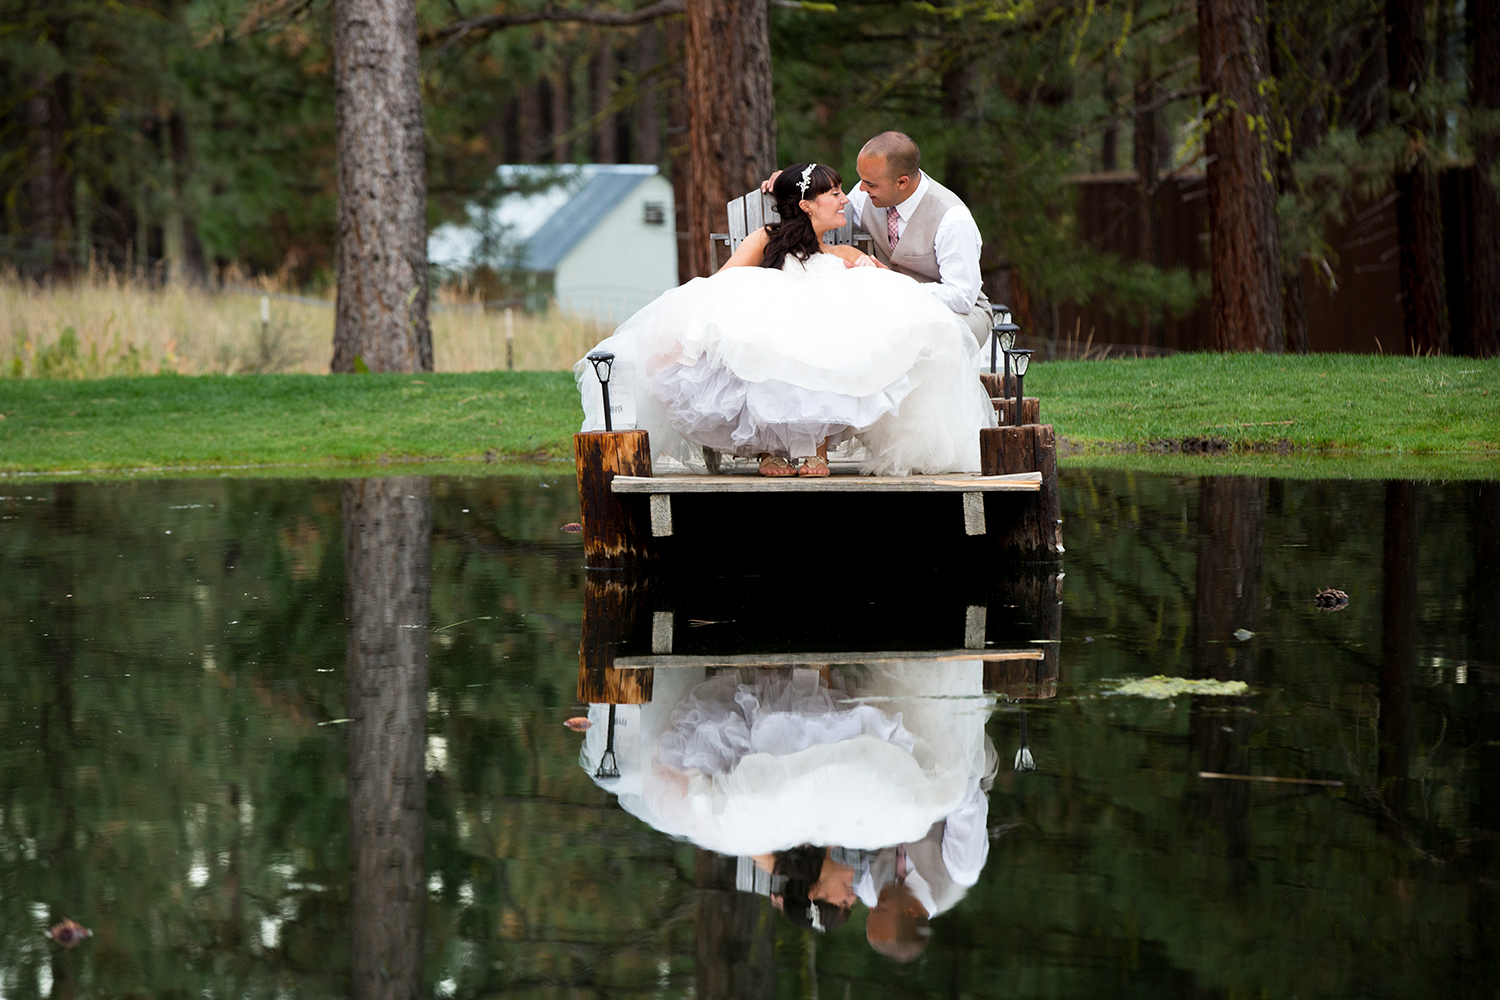 kevin-sawyer-photography-lake-tahoe-wedding-photographer-portola-grea-eagle-photography (27).JPG